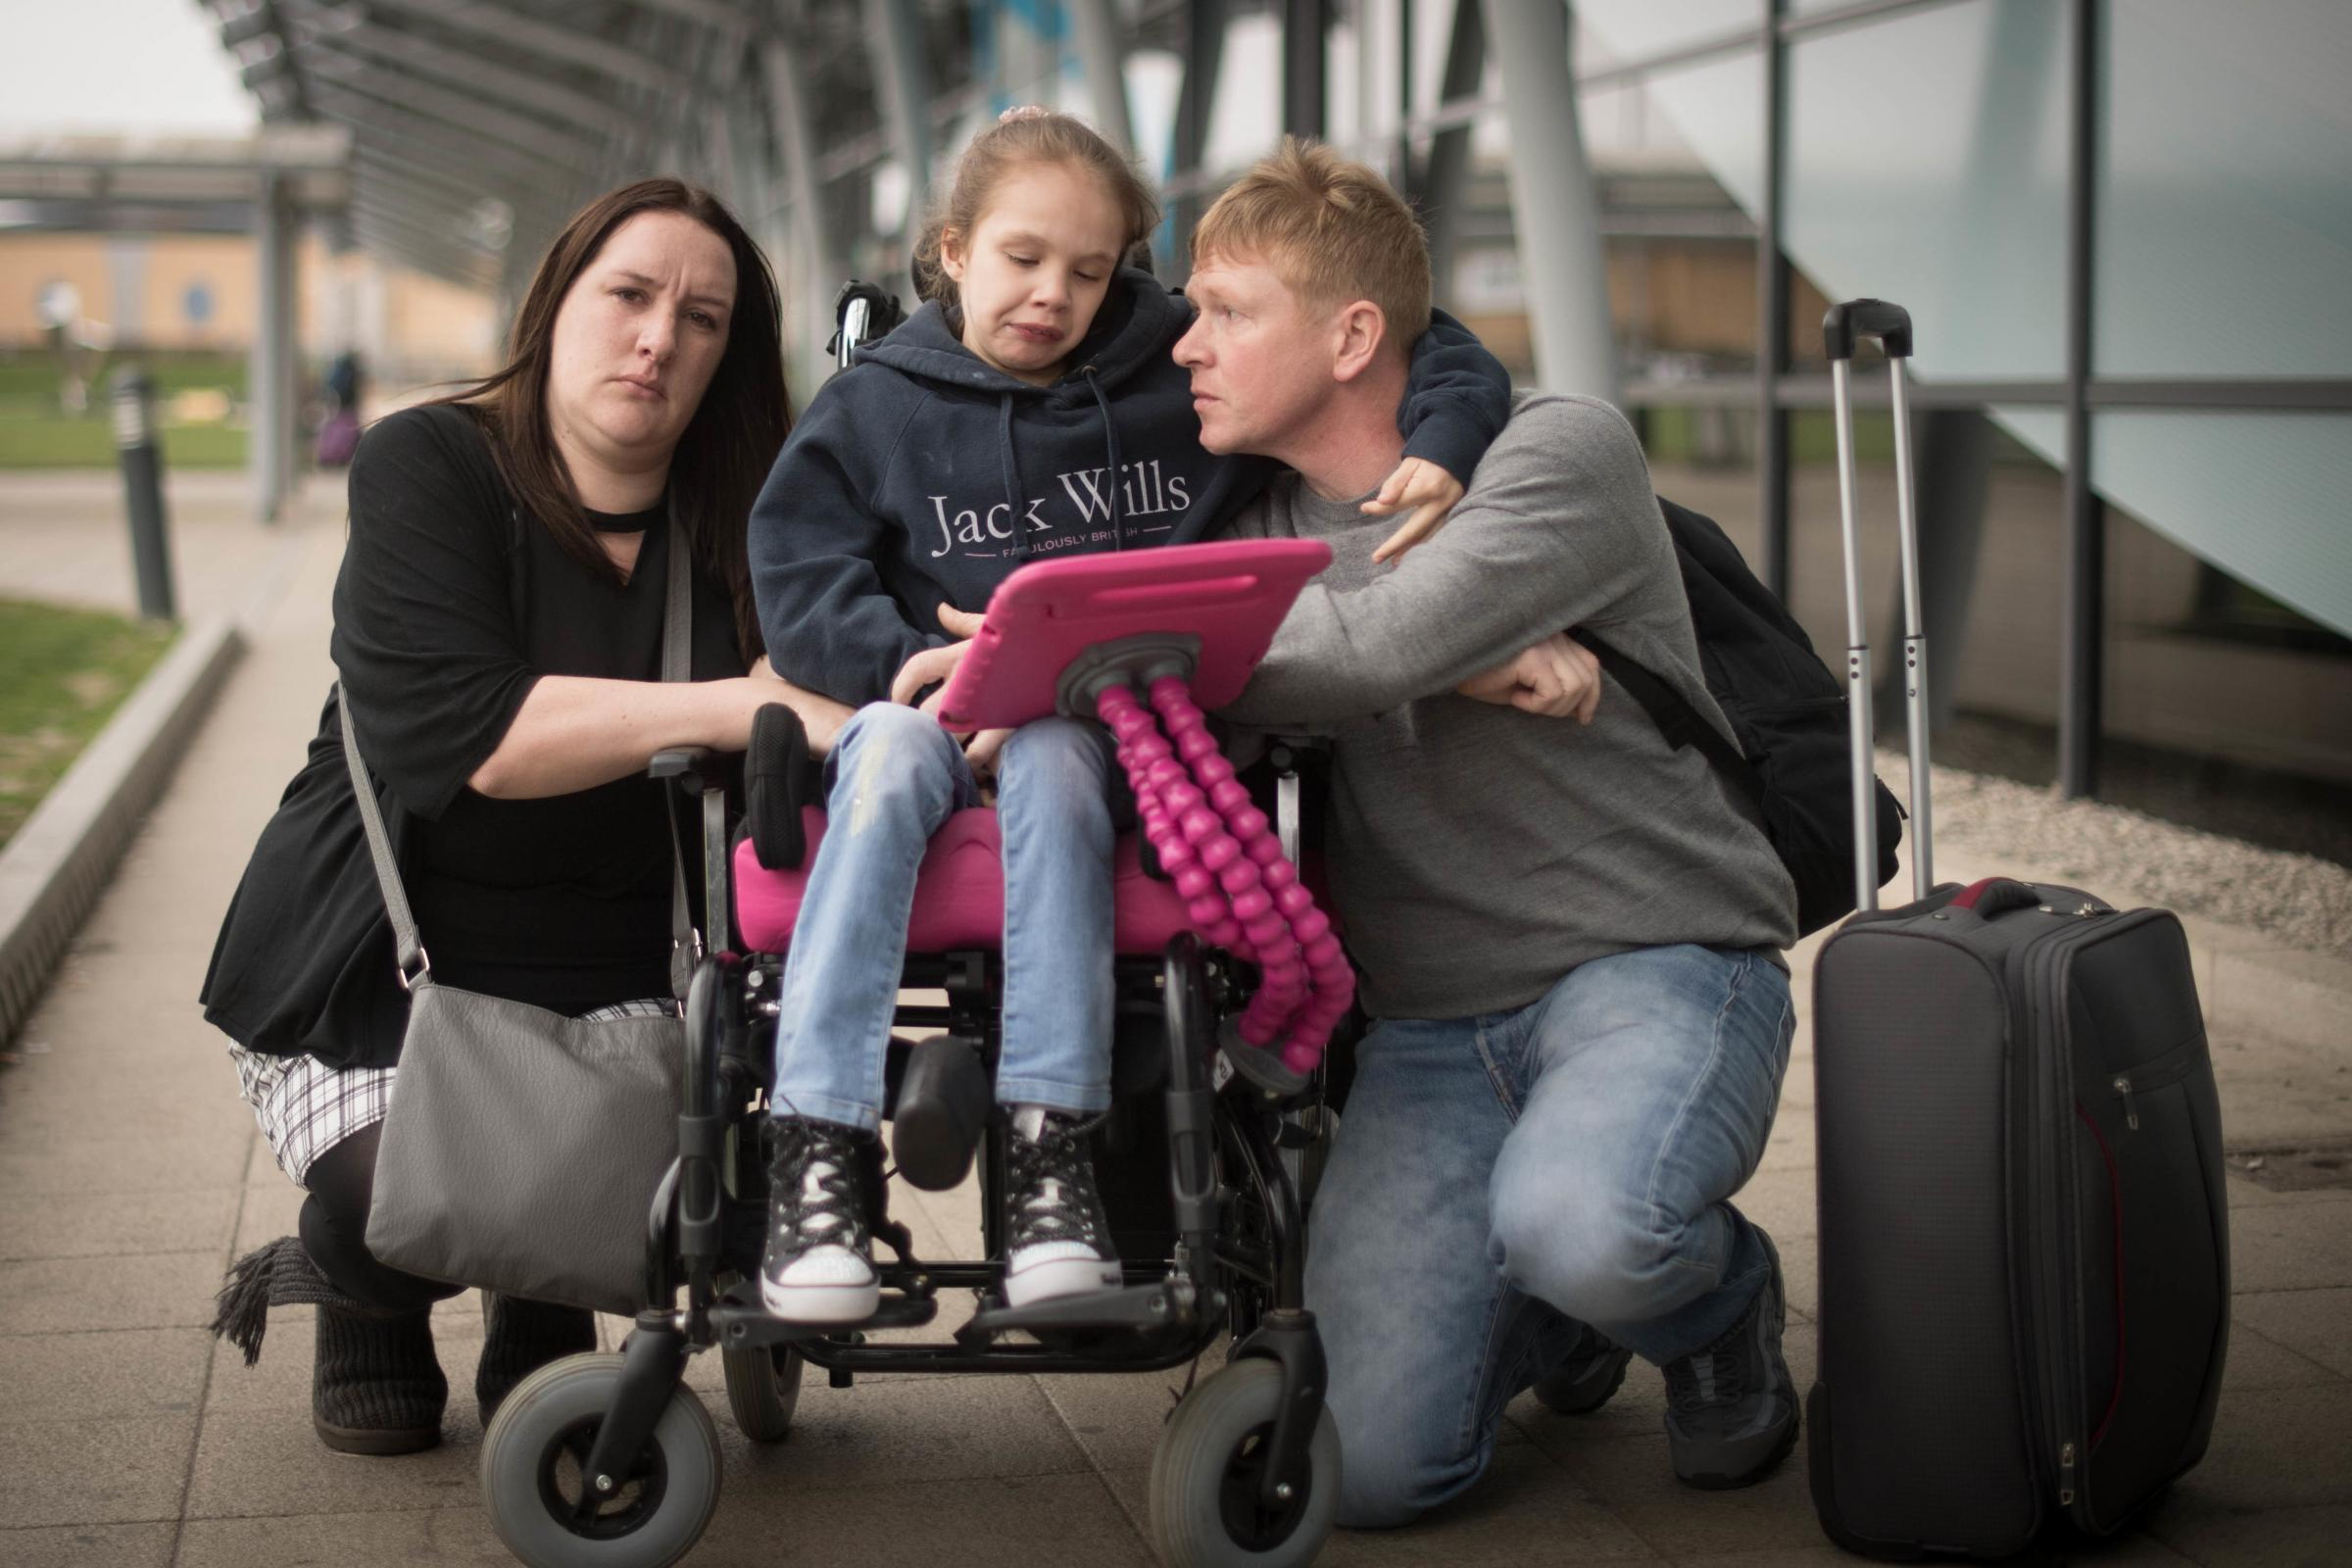 Emma Appleby (left), Lee Moore and their daughter Teagan. The mother of the severely epileptic child has said she is